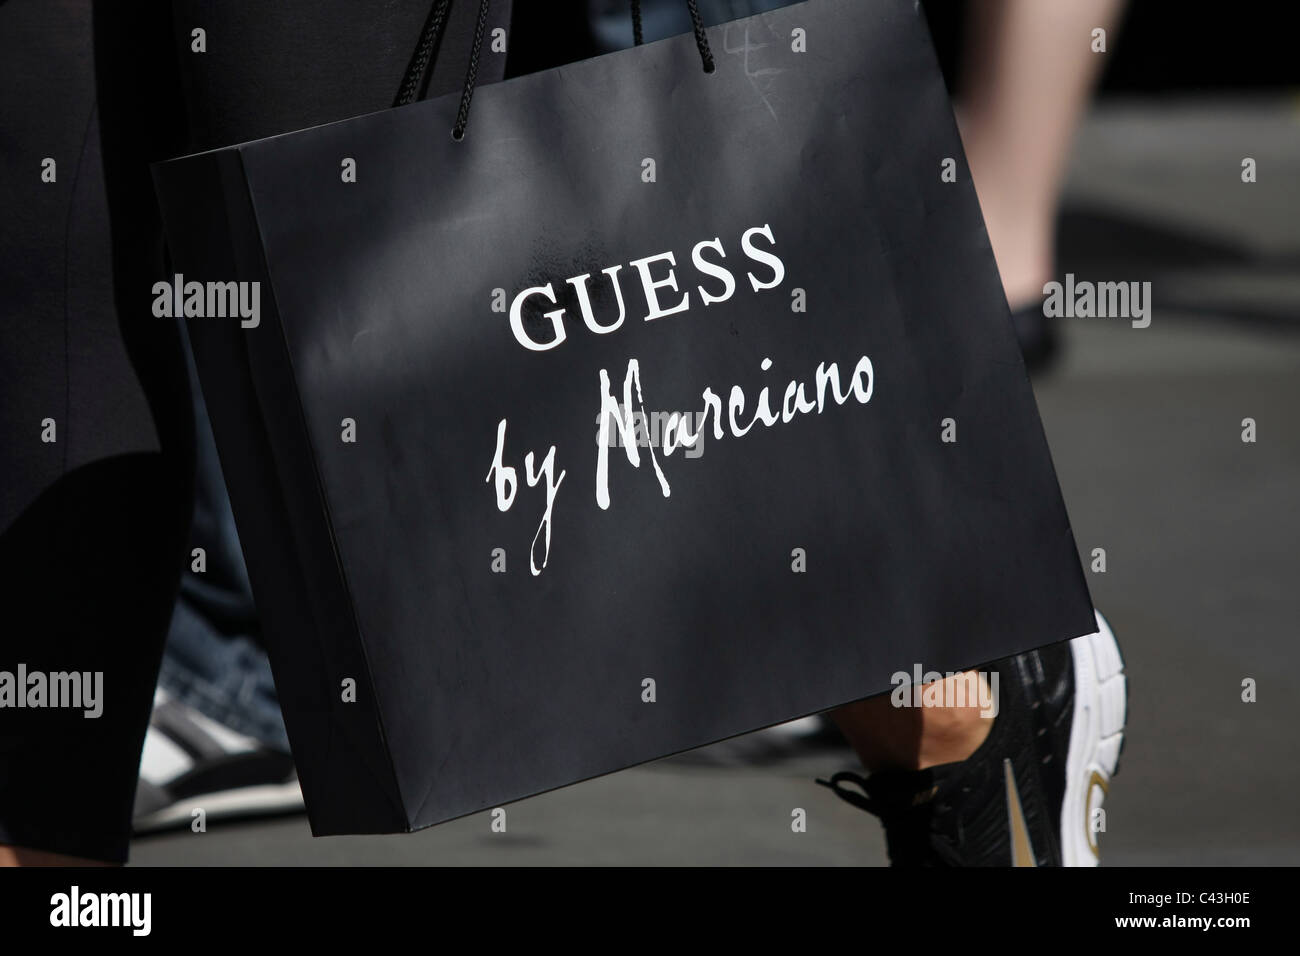 b343f4f2dd Guess Shopping Bag Photos & Guess Shopping Bag Images - Alamy